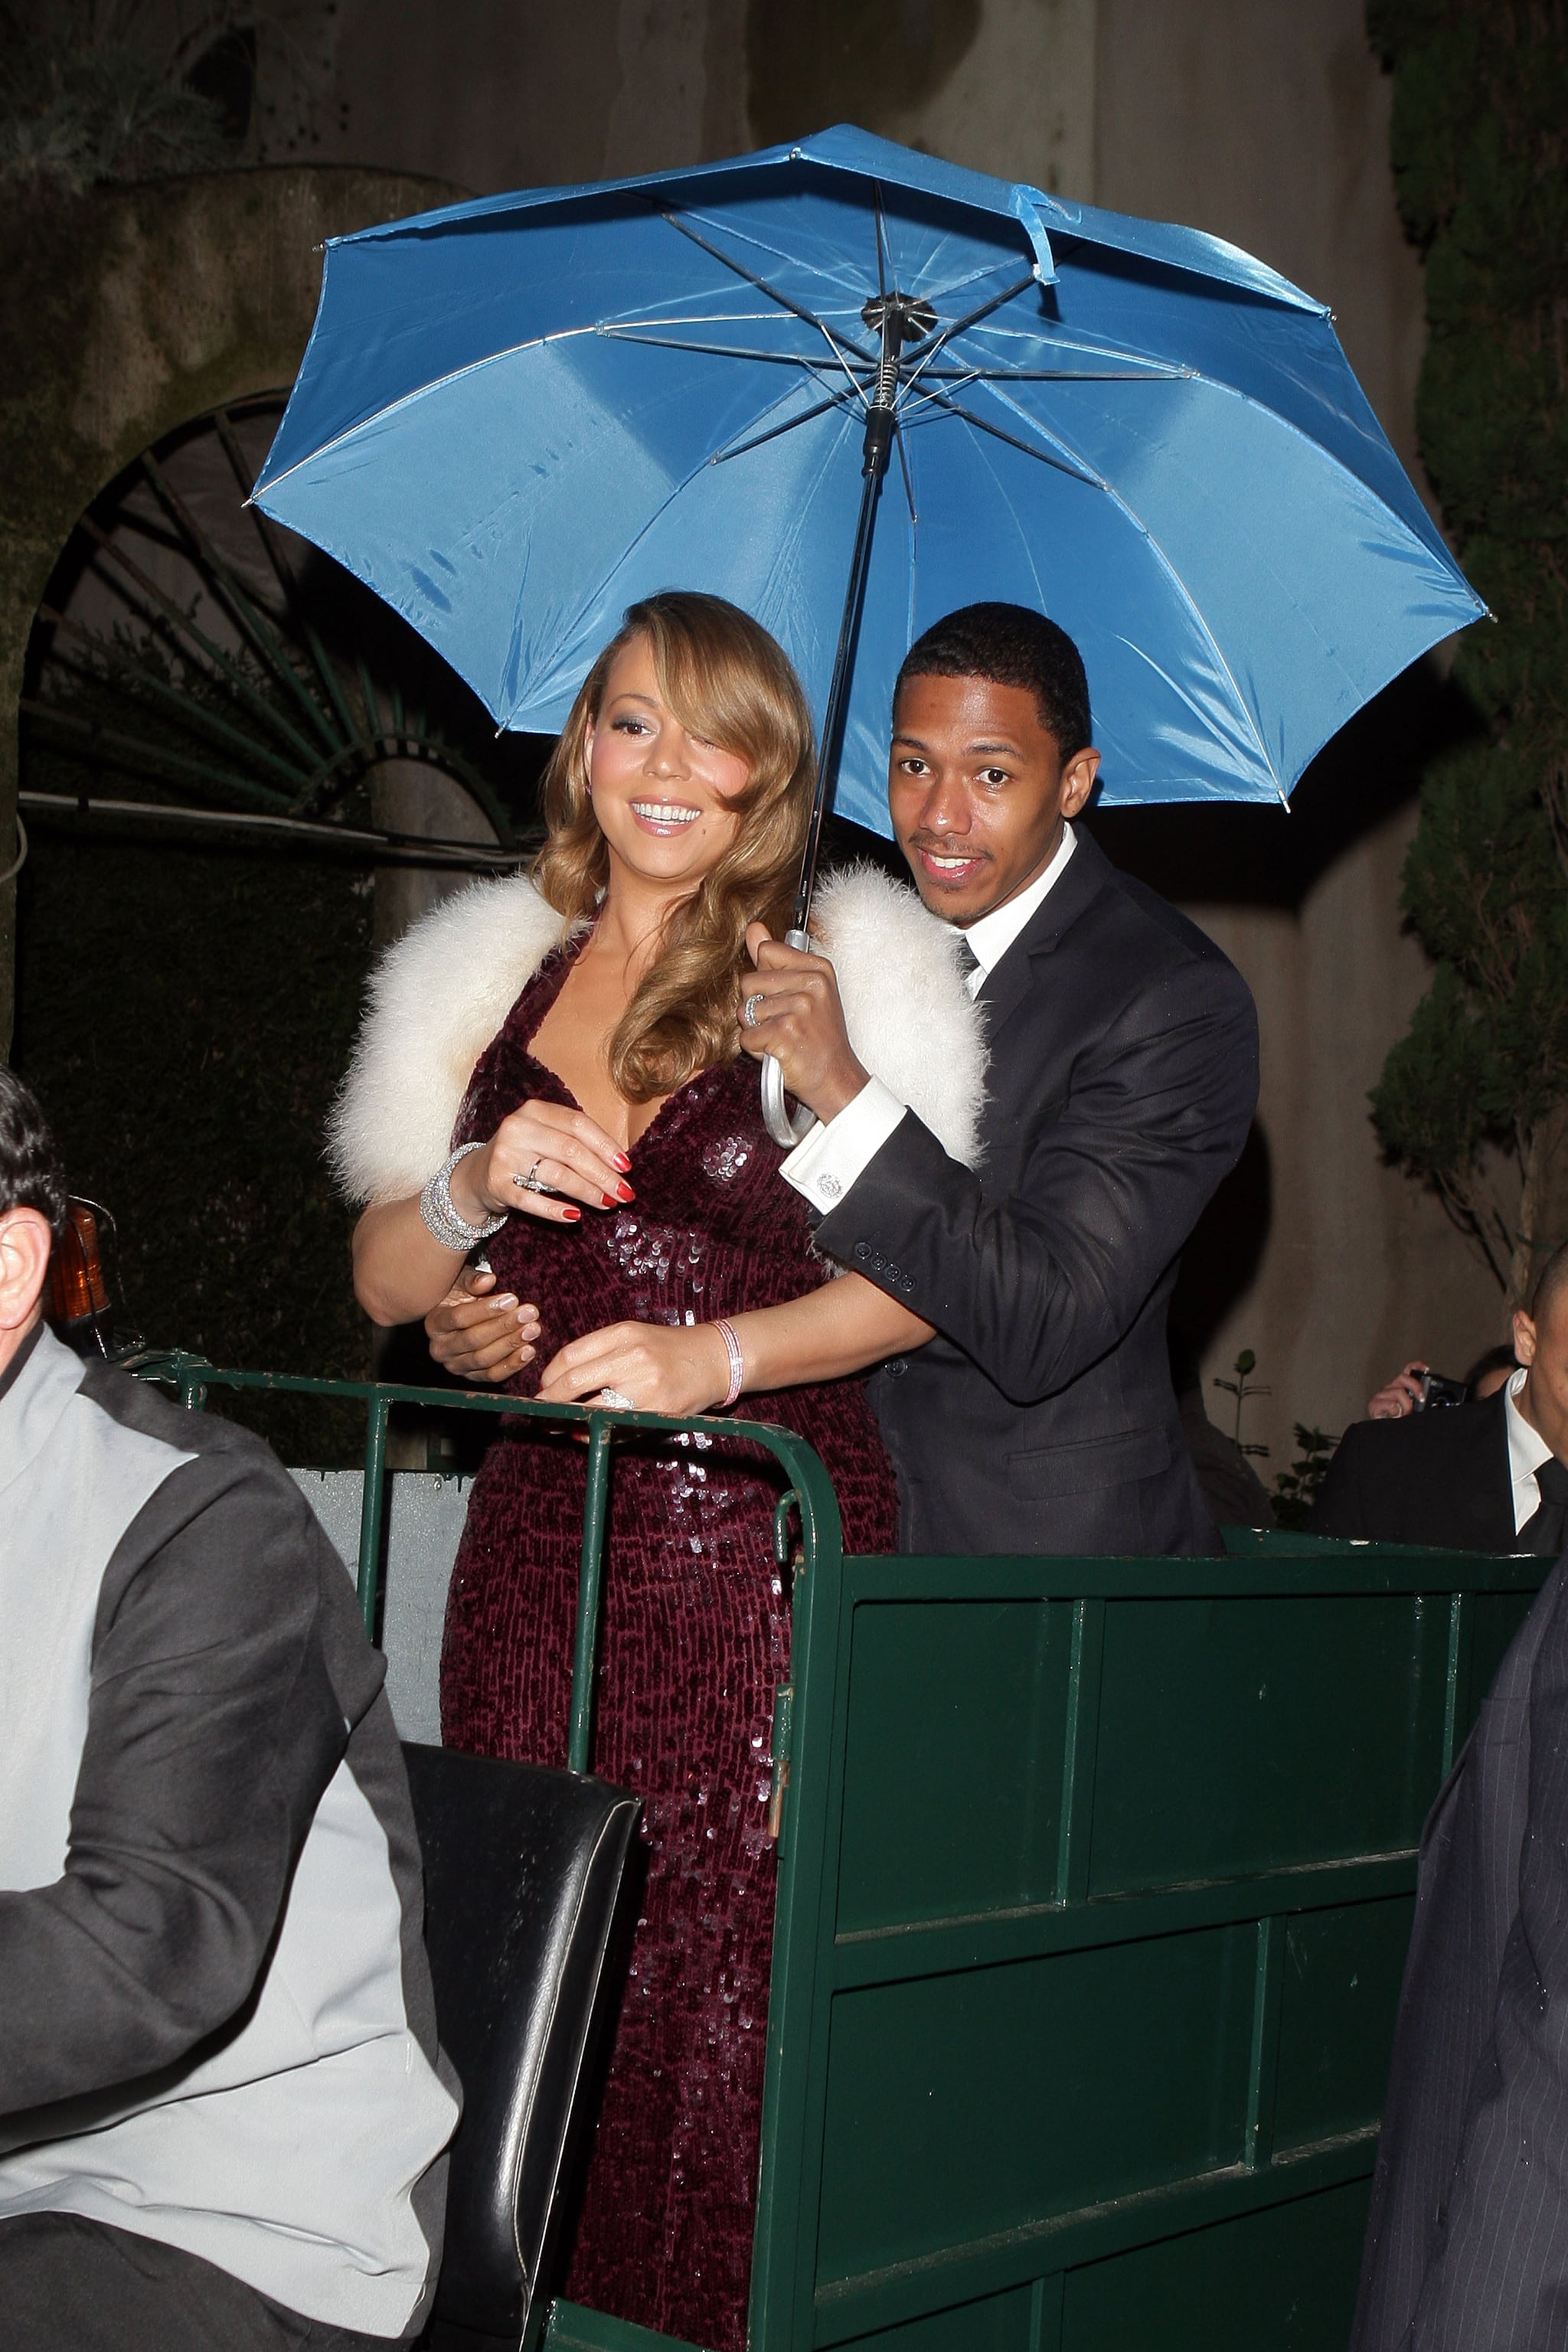 Nick Cannon covered Mariah Carey from the rain while in Italy at the 2009 International Film Festival.